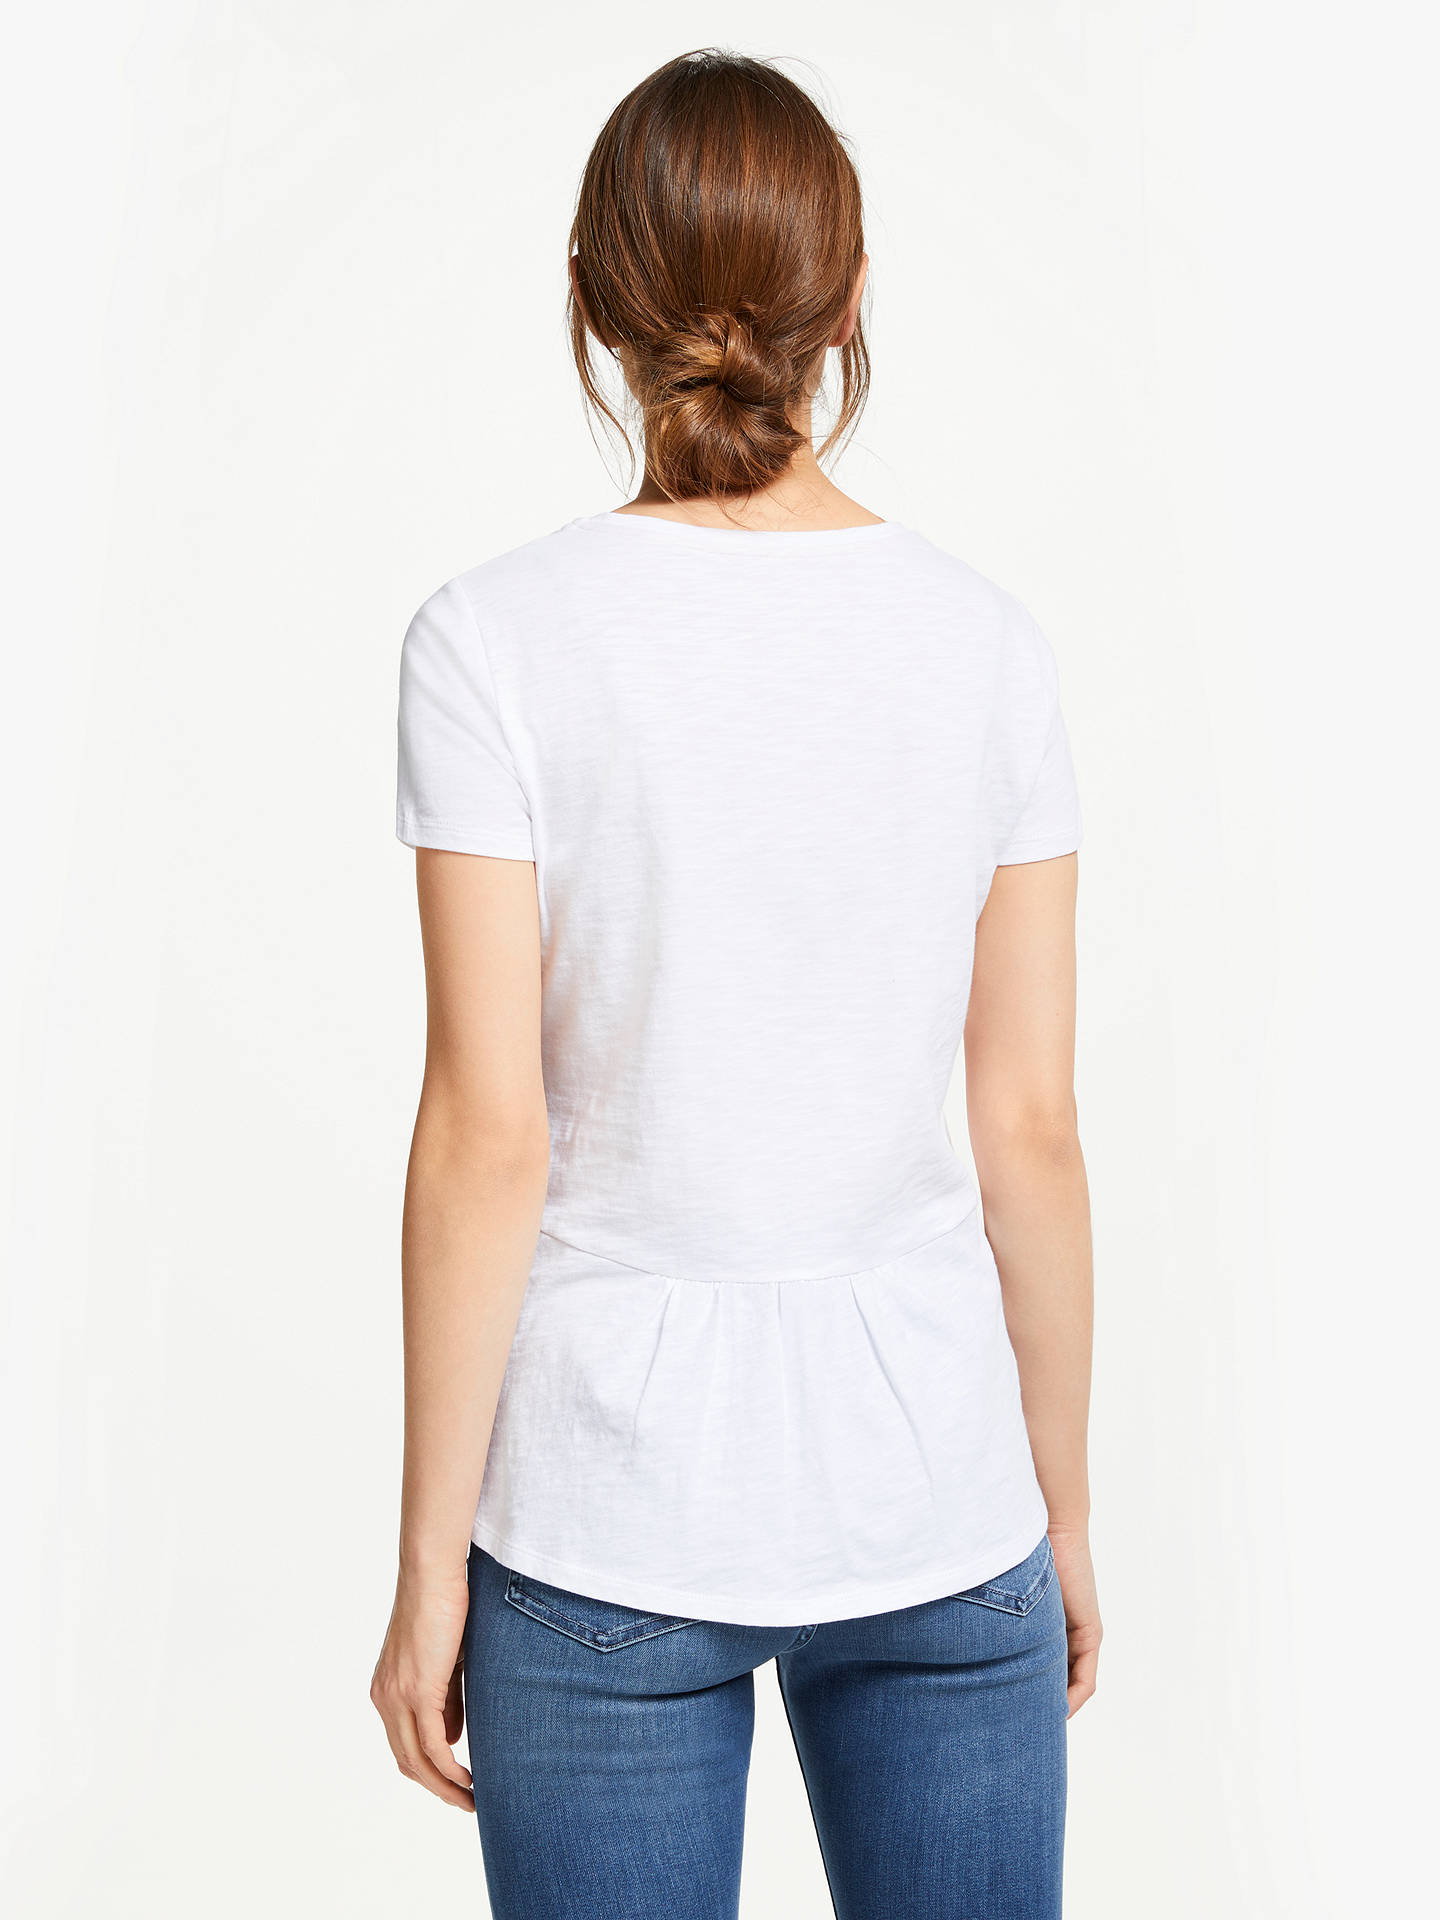 BuyBoden Cotton Back Detail T-Shirt, White, L Online at johnlewis.com